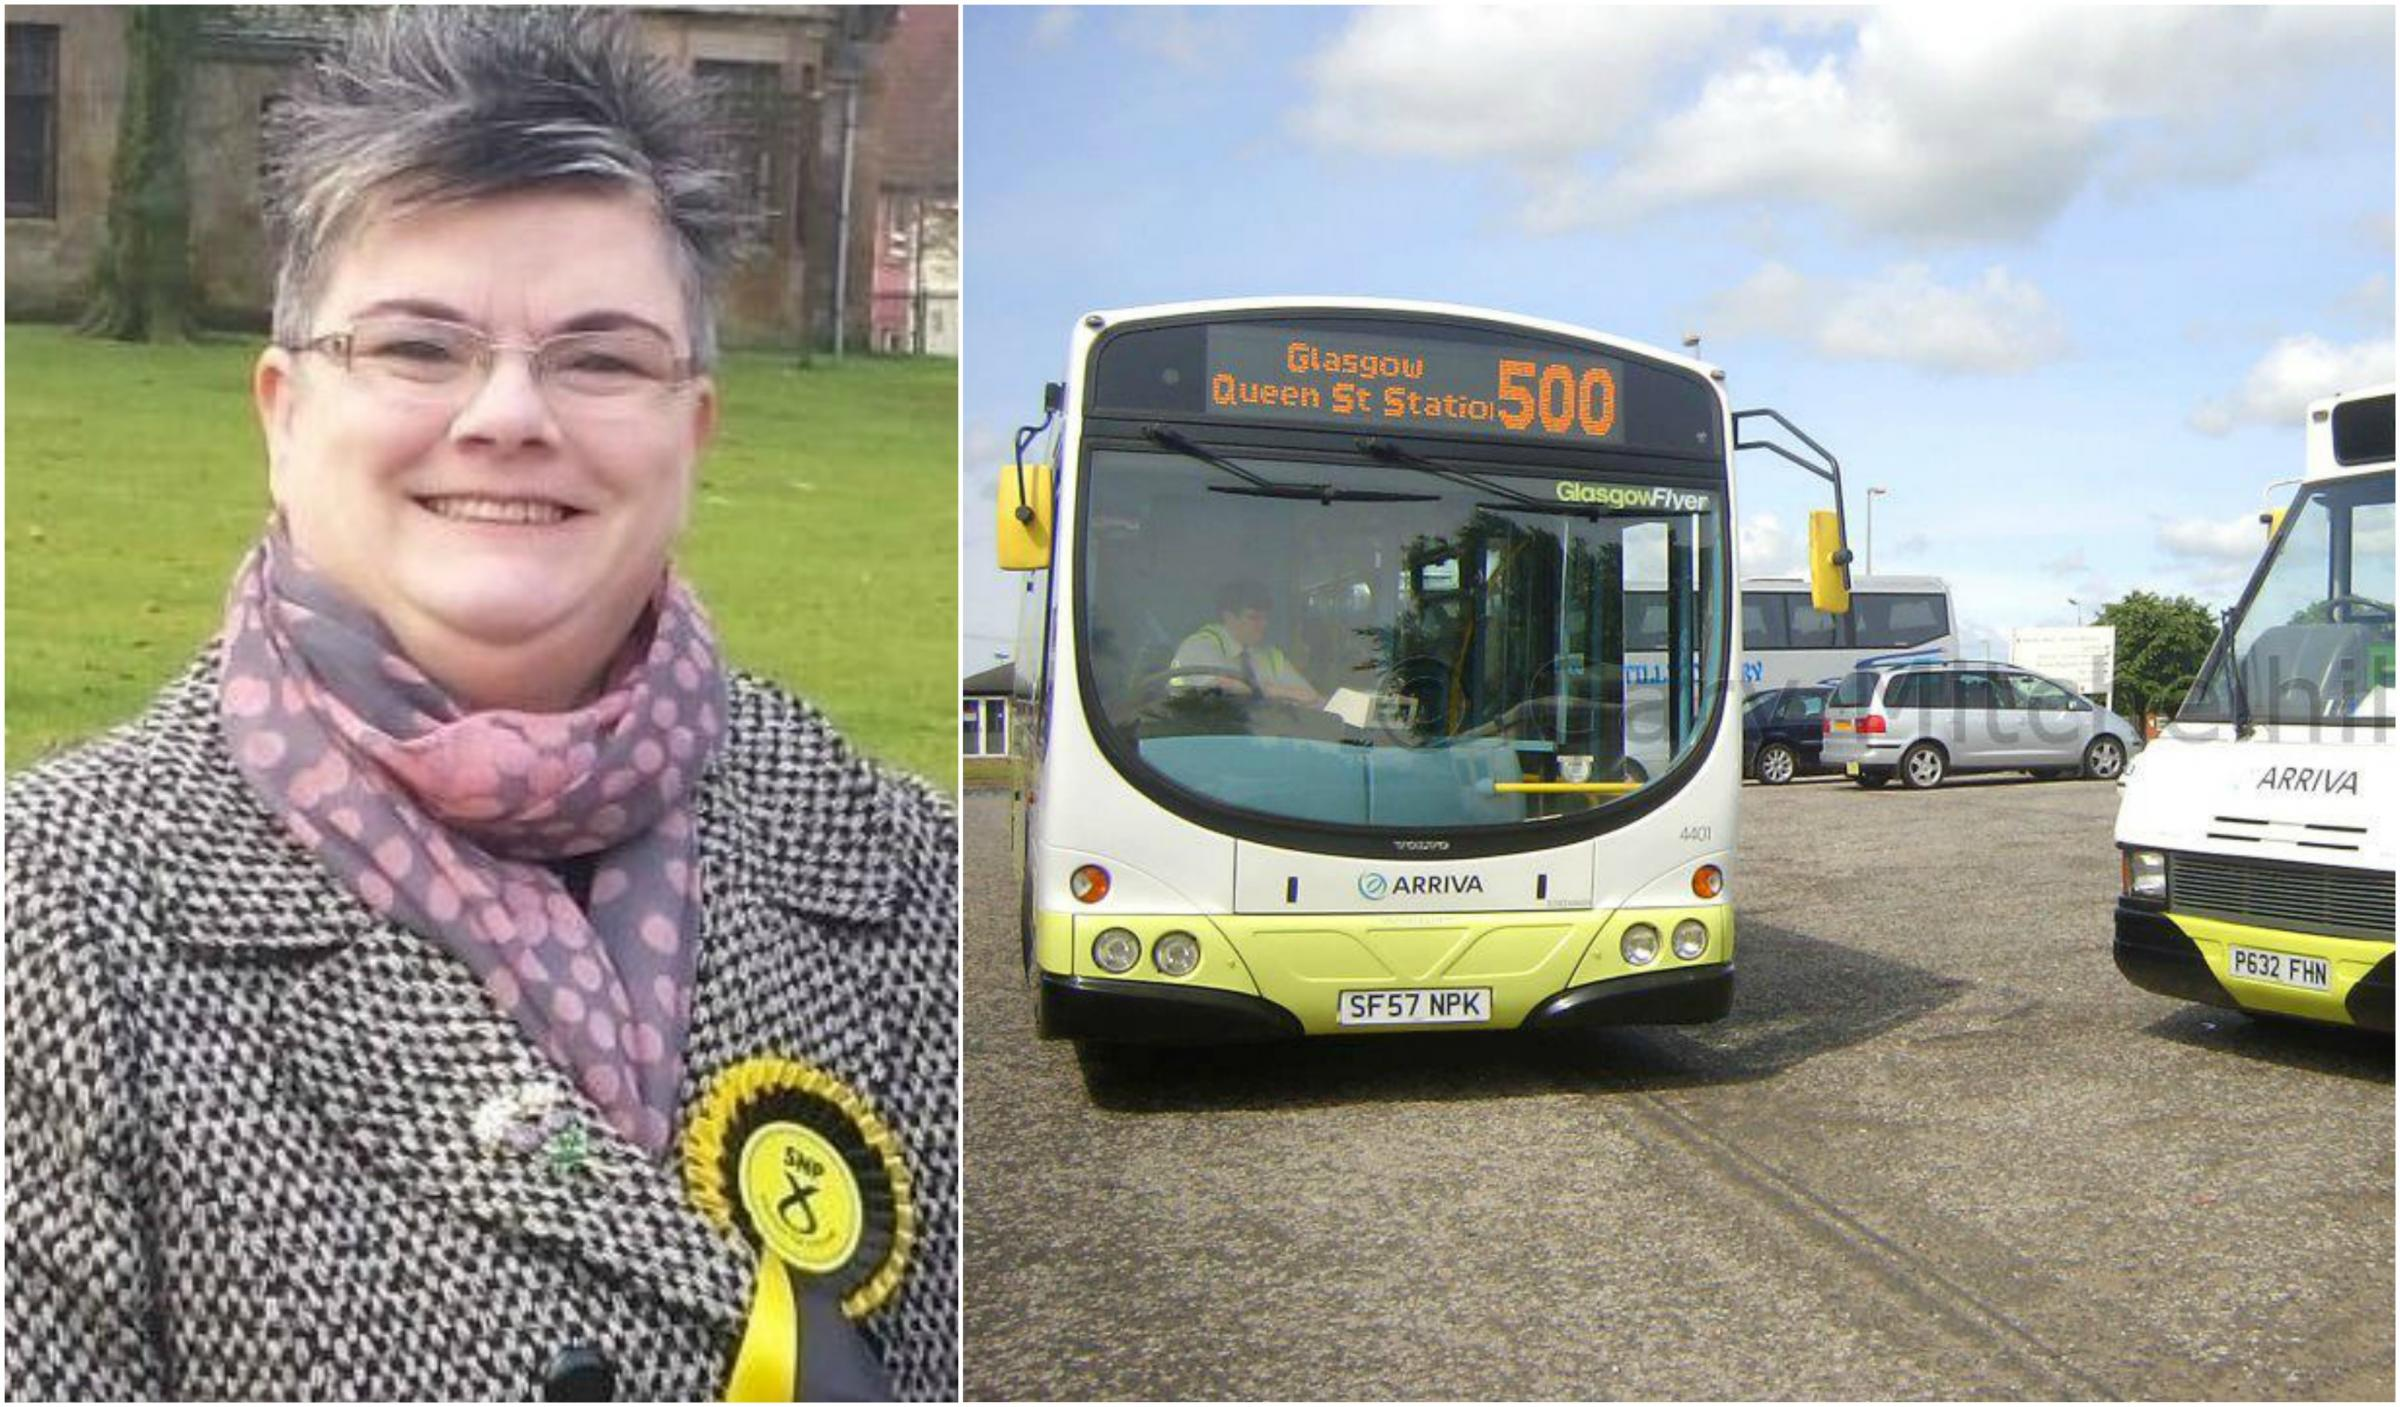 Barrhead, Liboside and Uplawmoor representative Angela Convery once worked as a bus driver with Arriva and Stagecoach